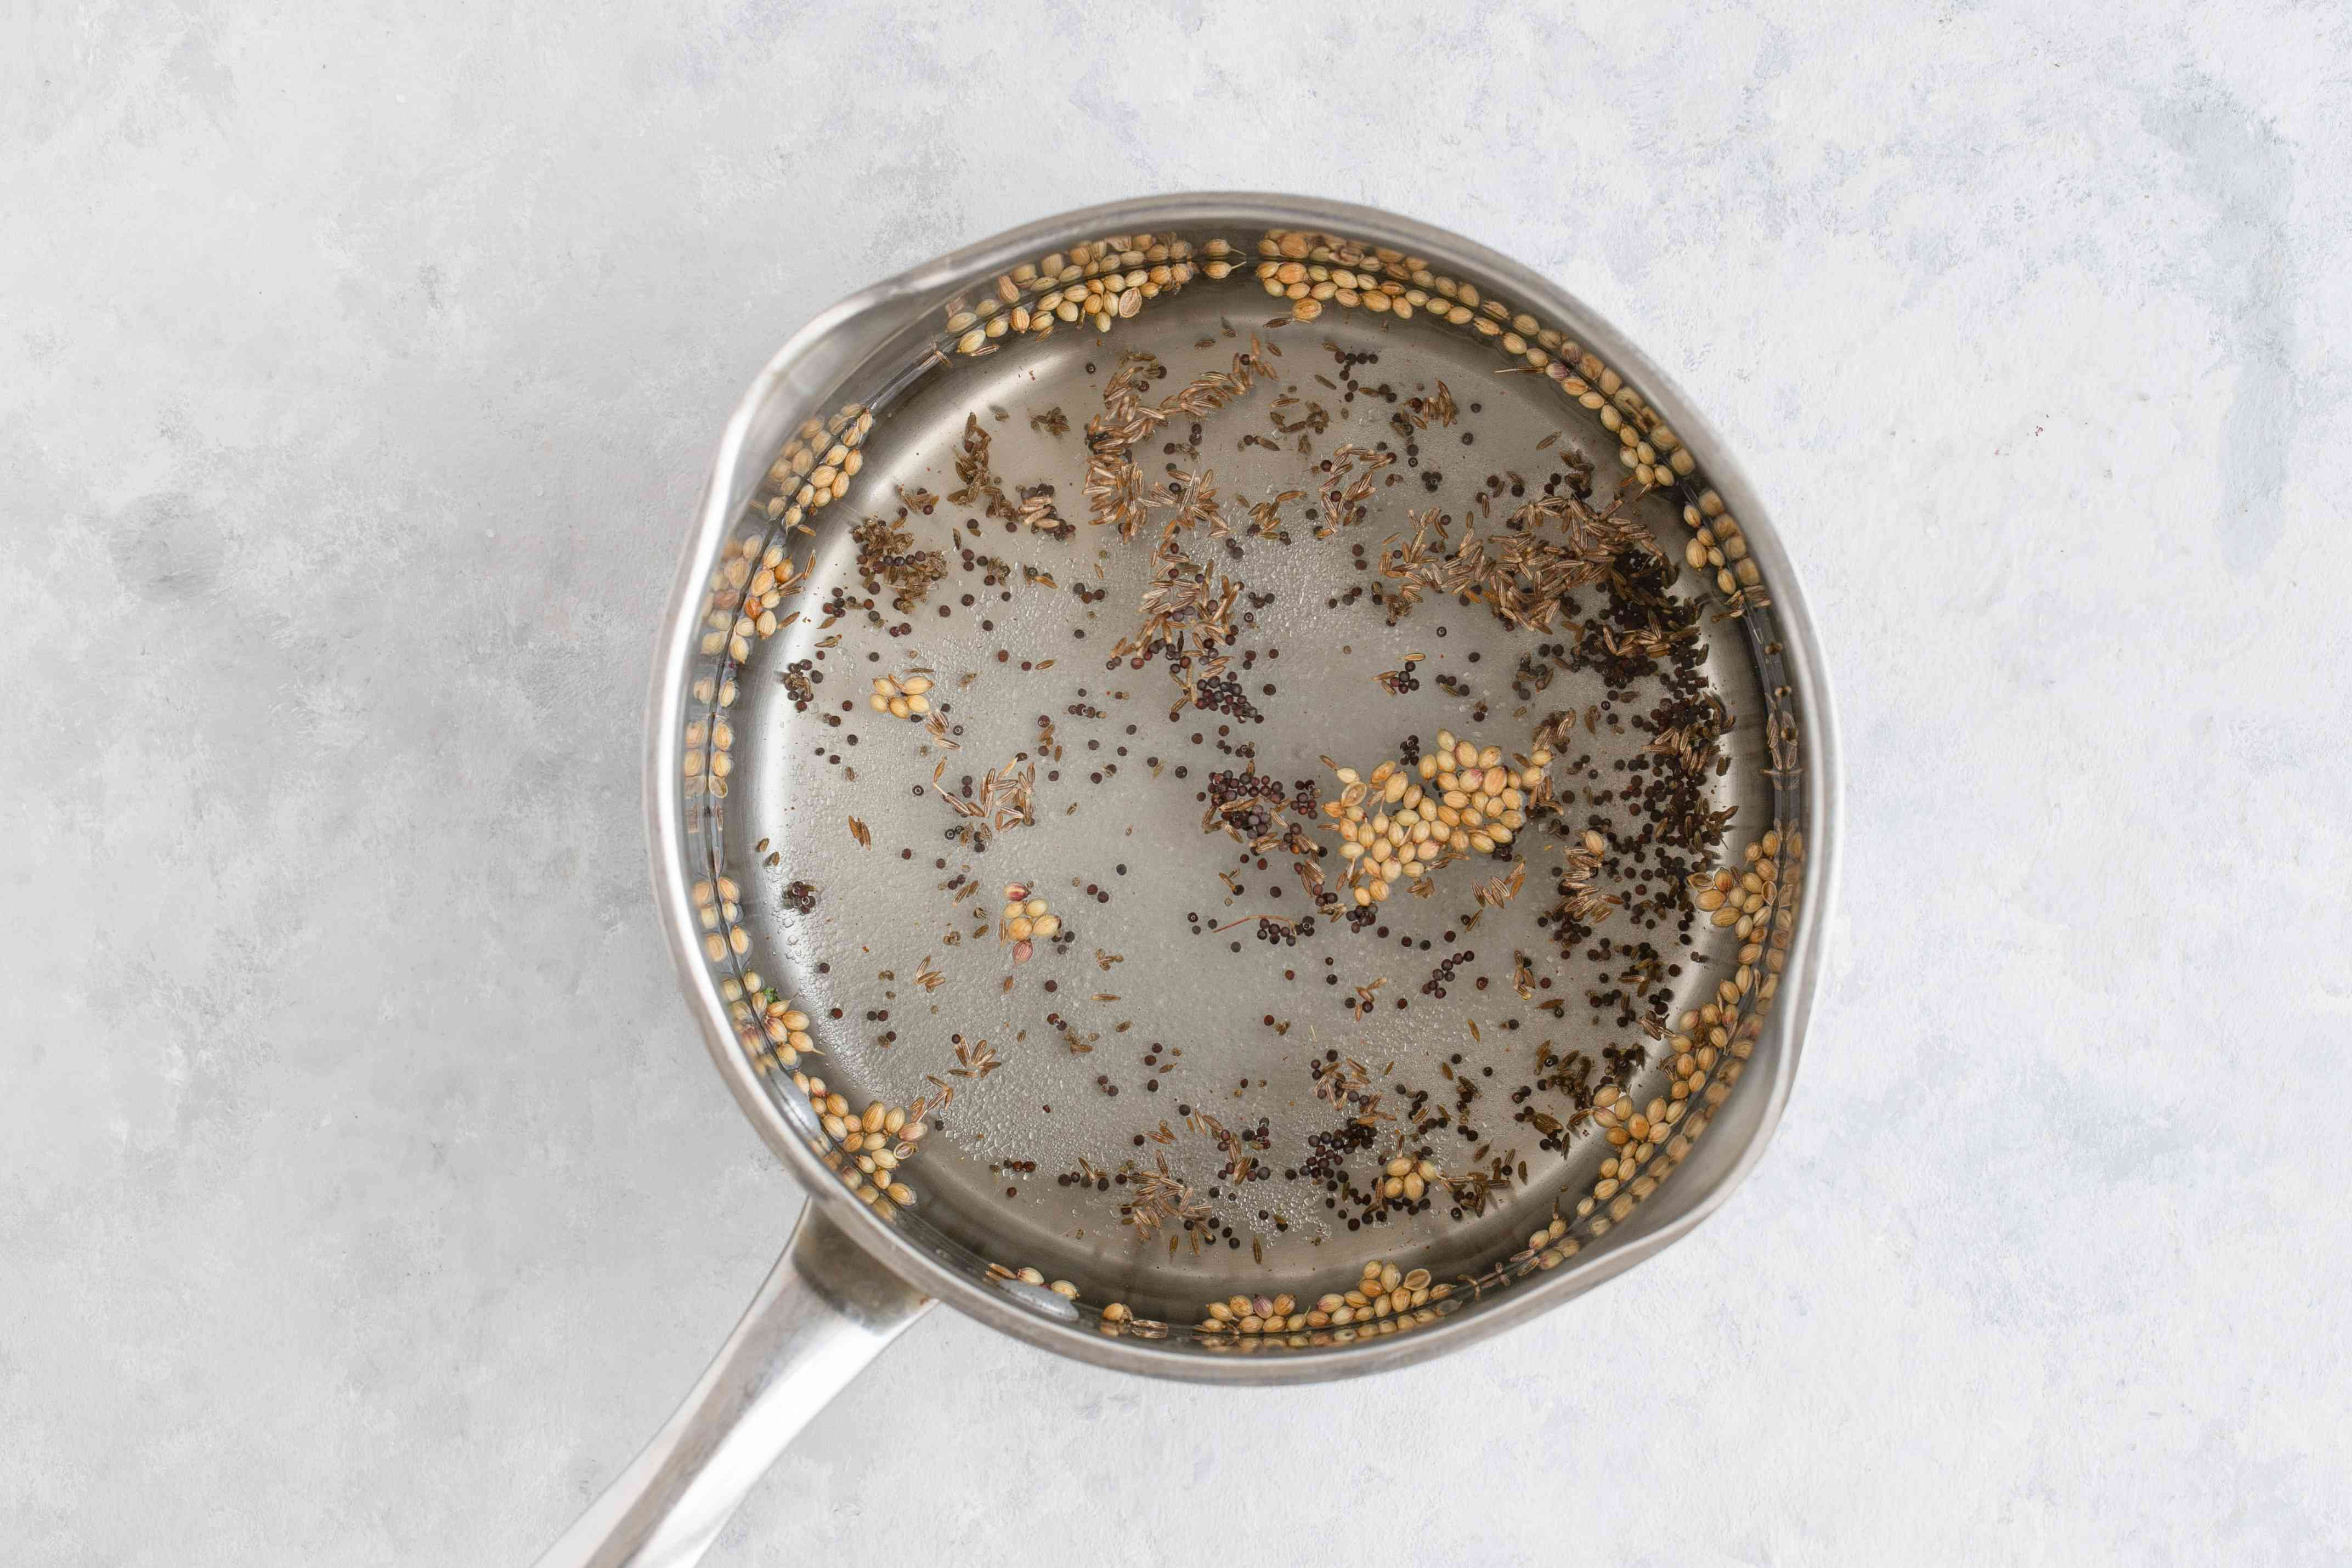 Combine vinegar and spices